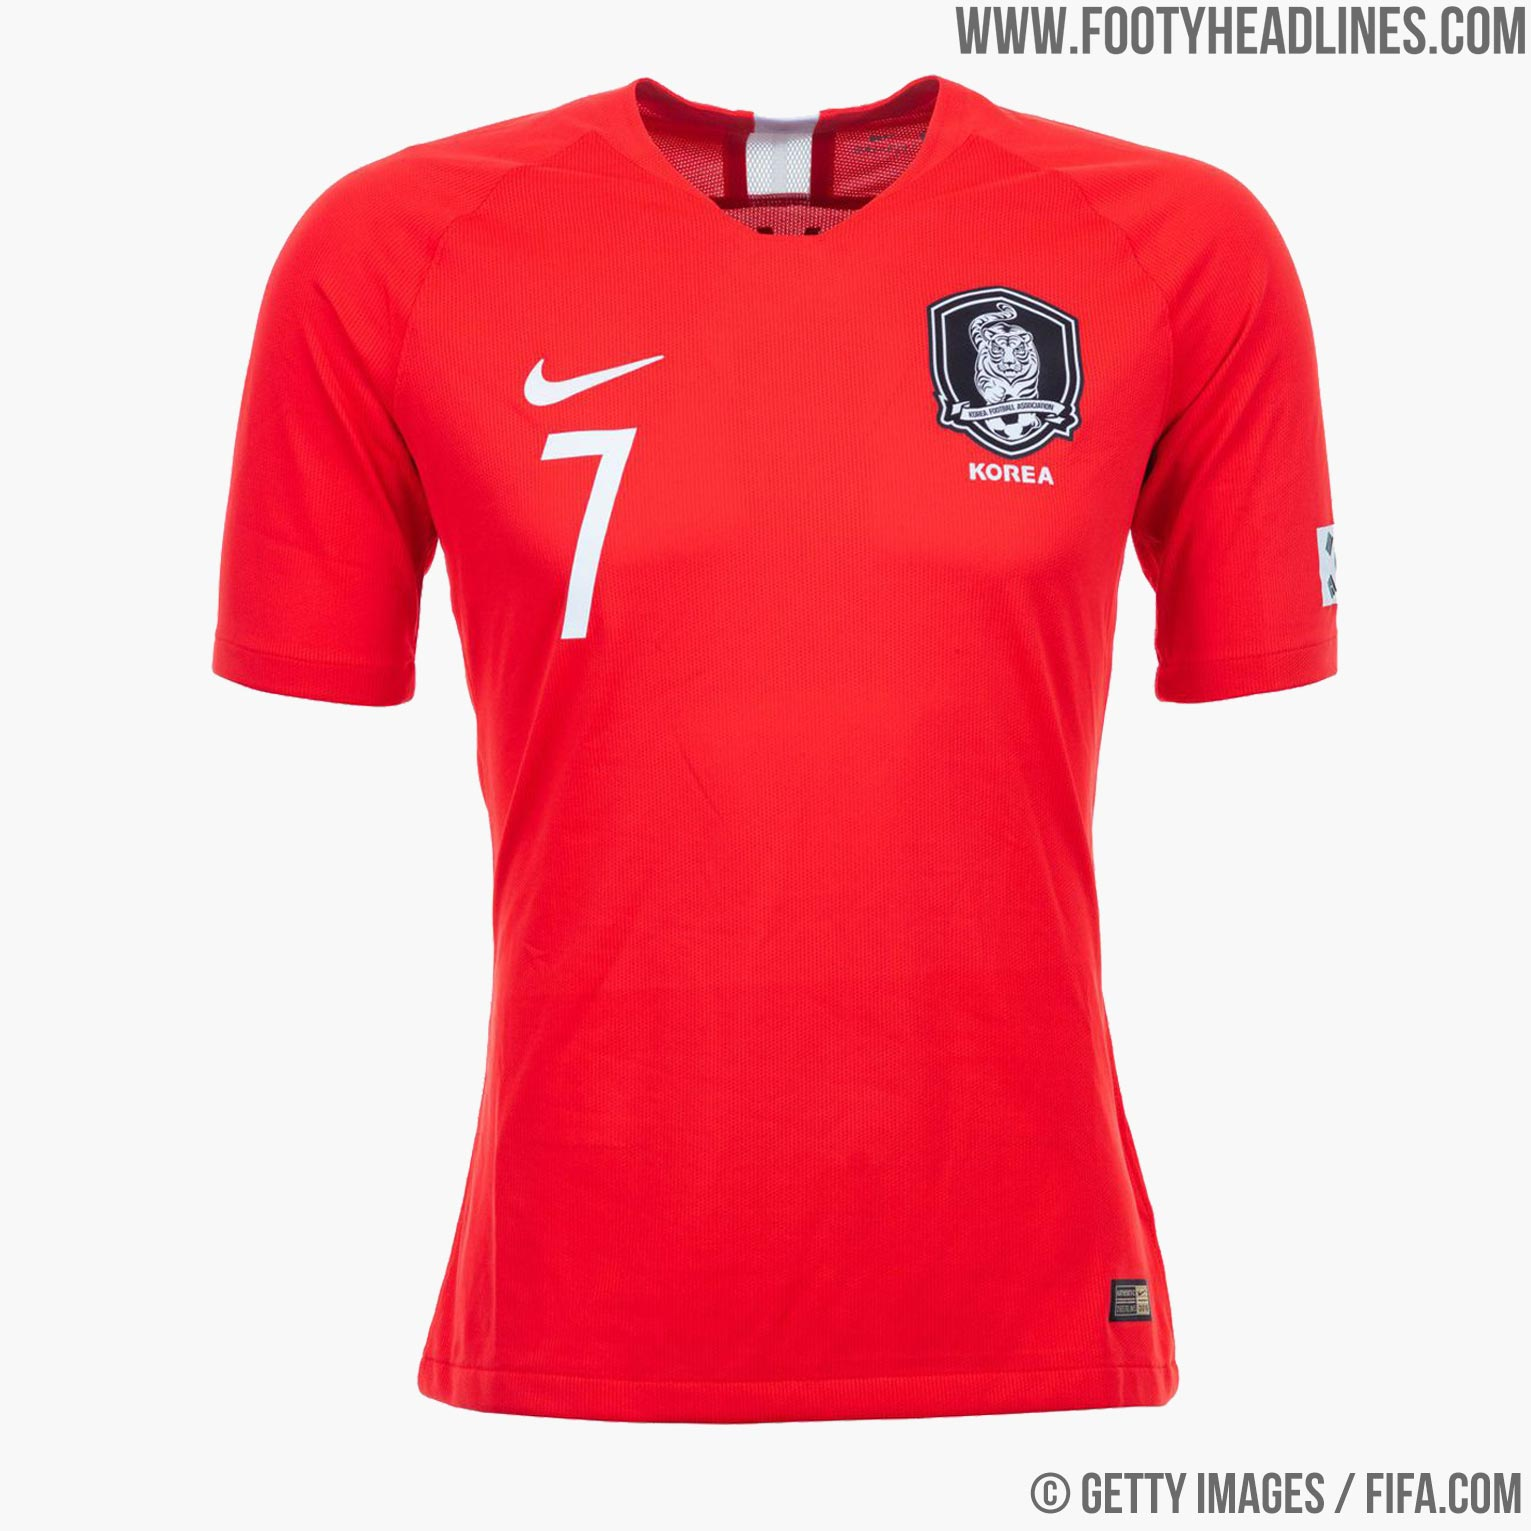 d89376568bd South Korea 2018 World Cup Kit Buy now. Free UK shipping - worldwide  delivery